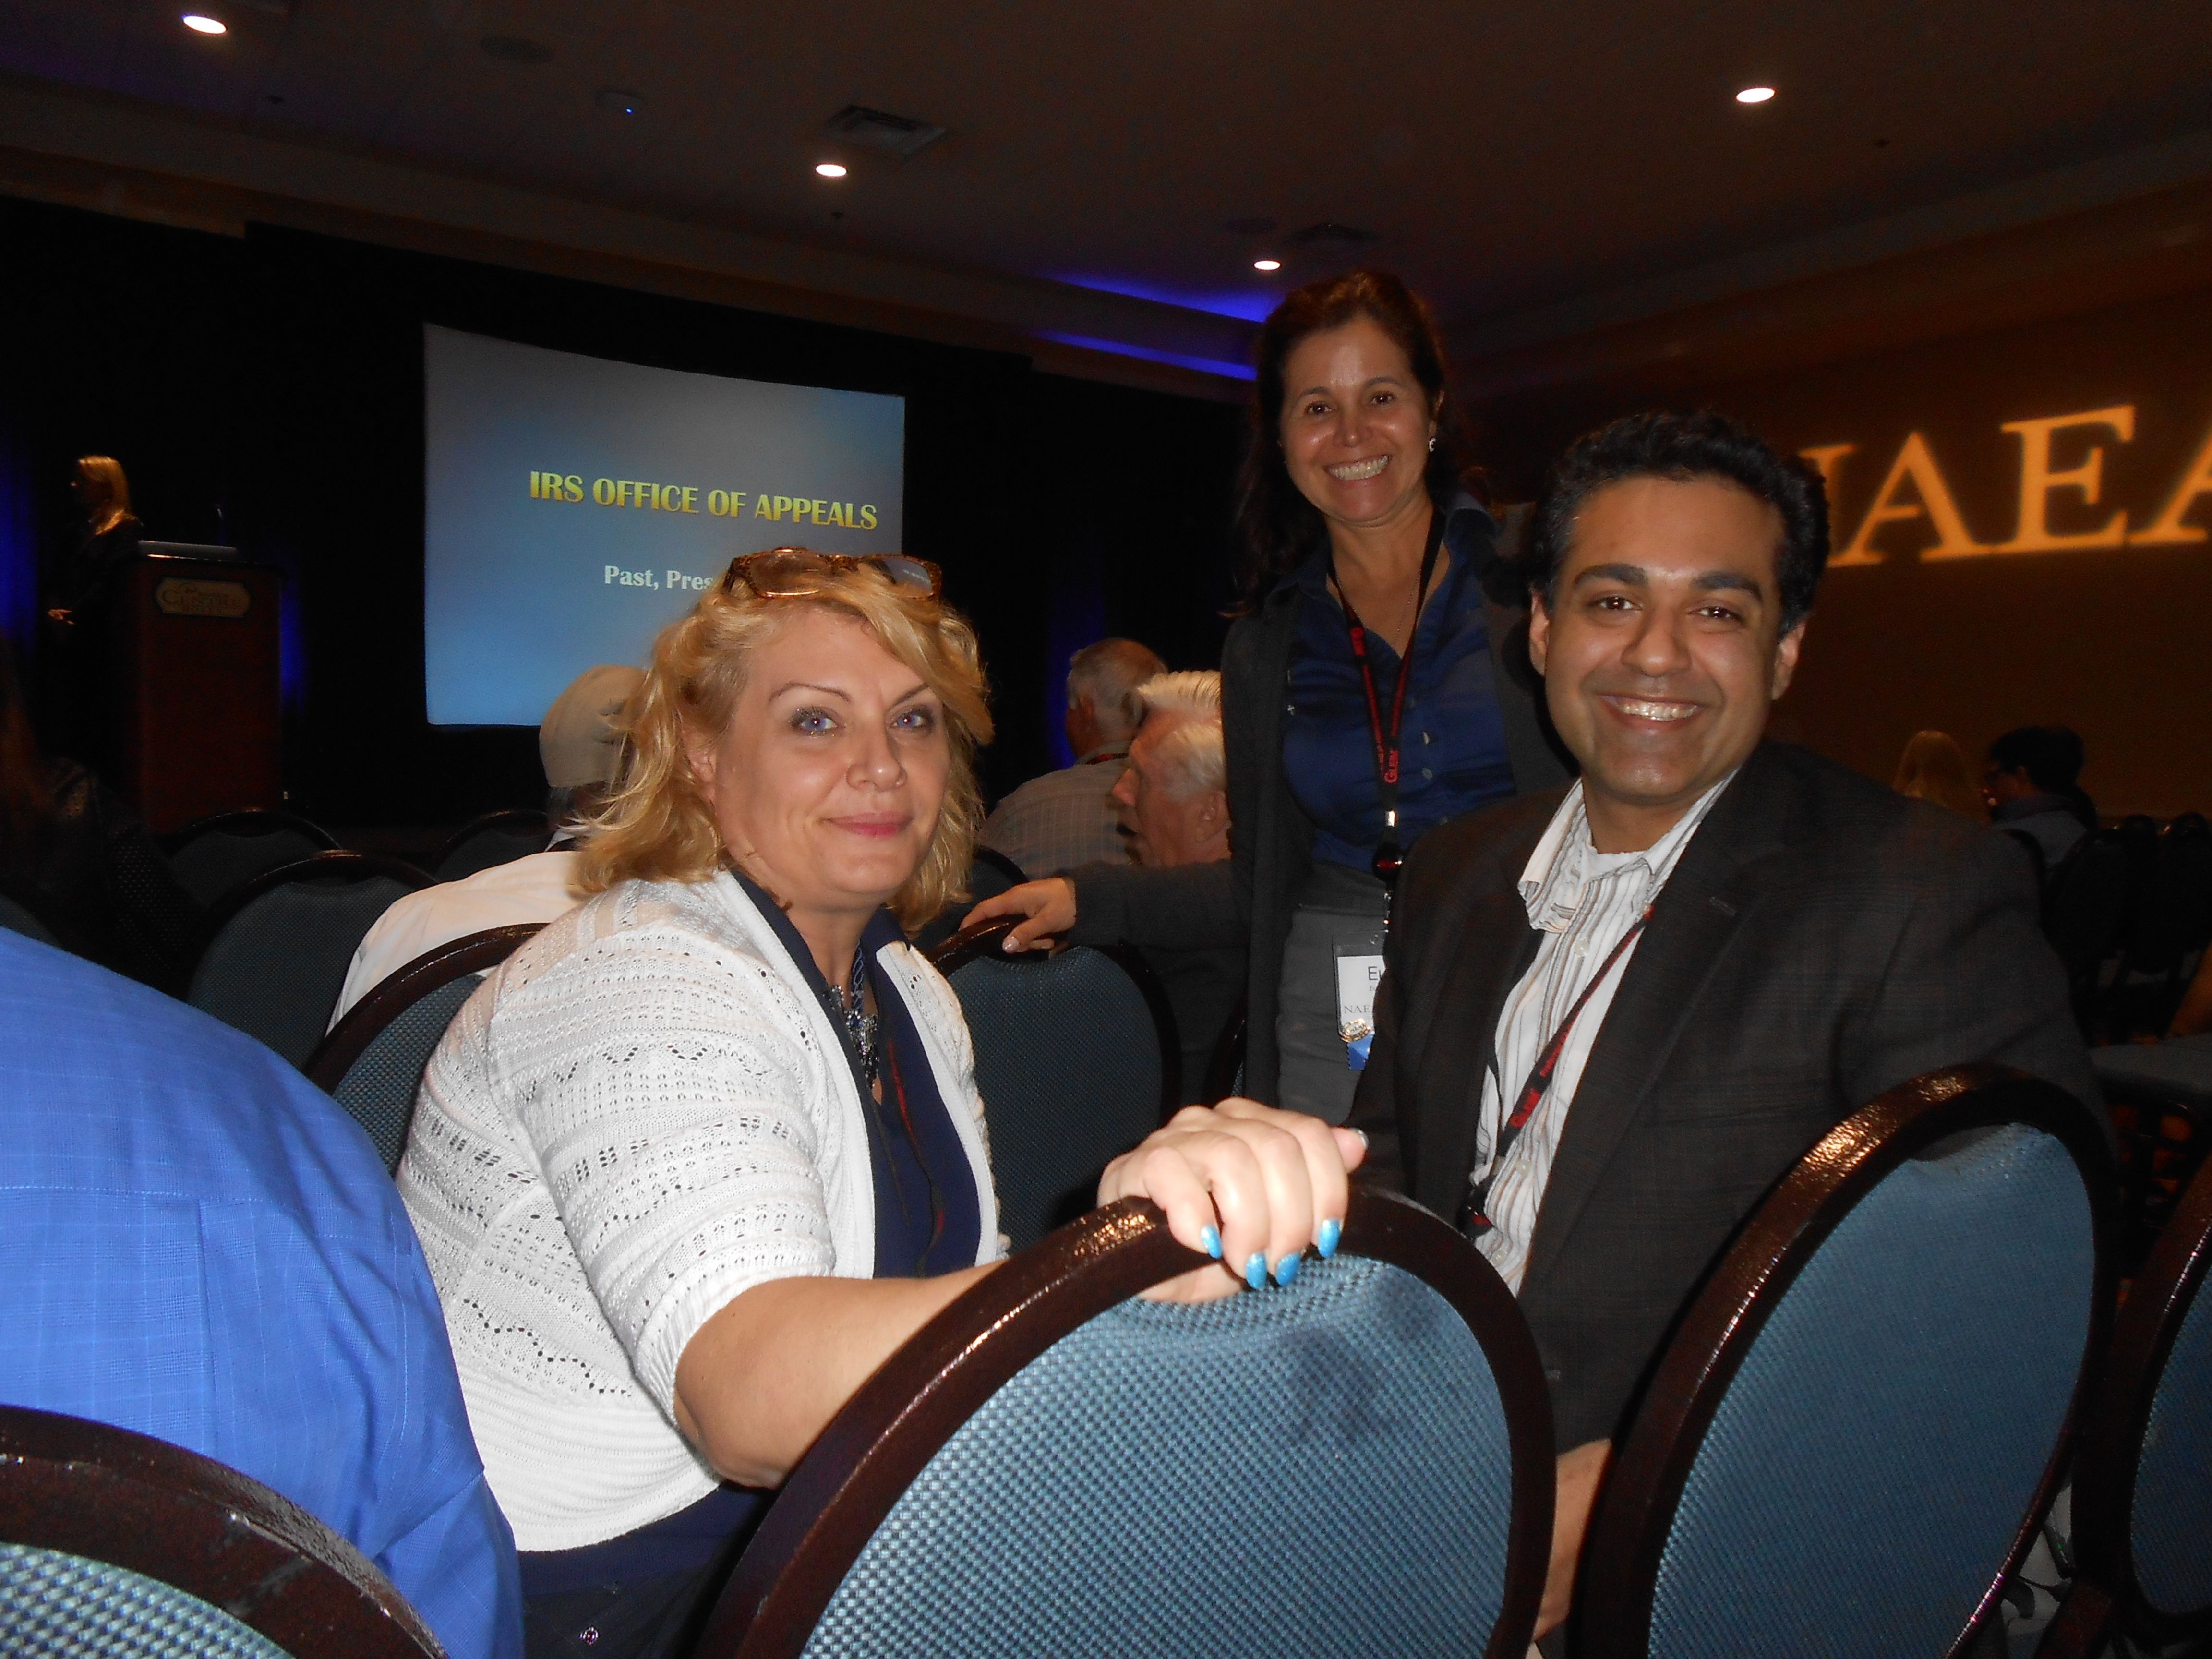 Firm Attends Plenary Session with IRS National Director